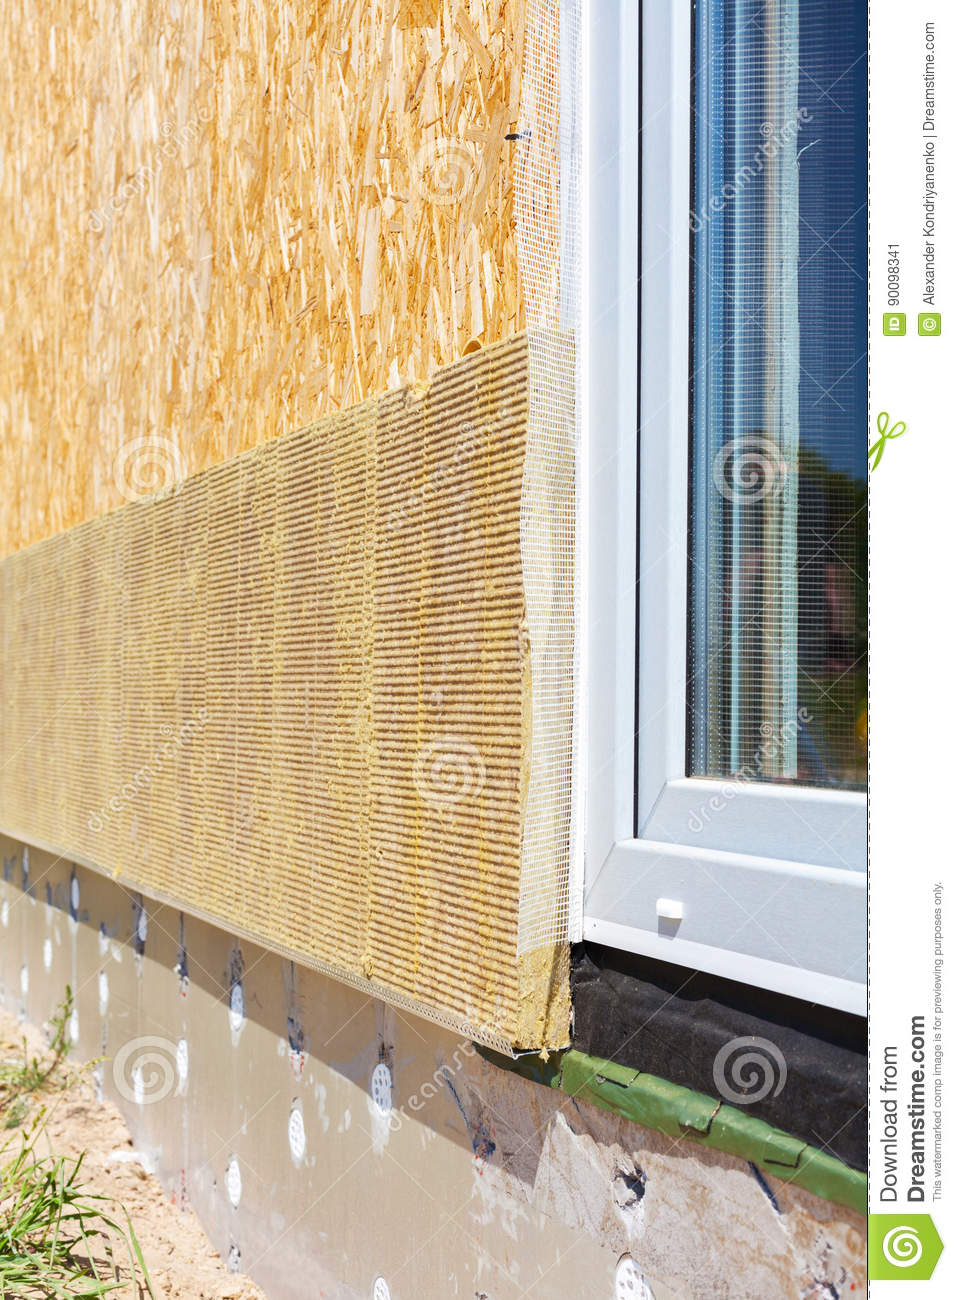 Closeup View On House Wall With Plastic Window And Insulation - Window Plastic Insulation